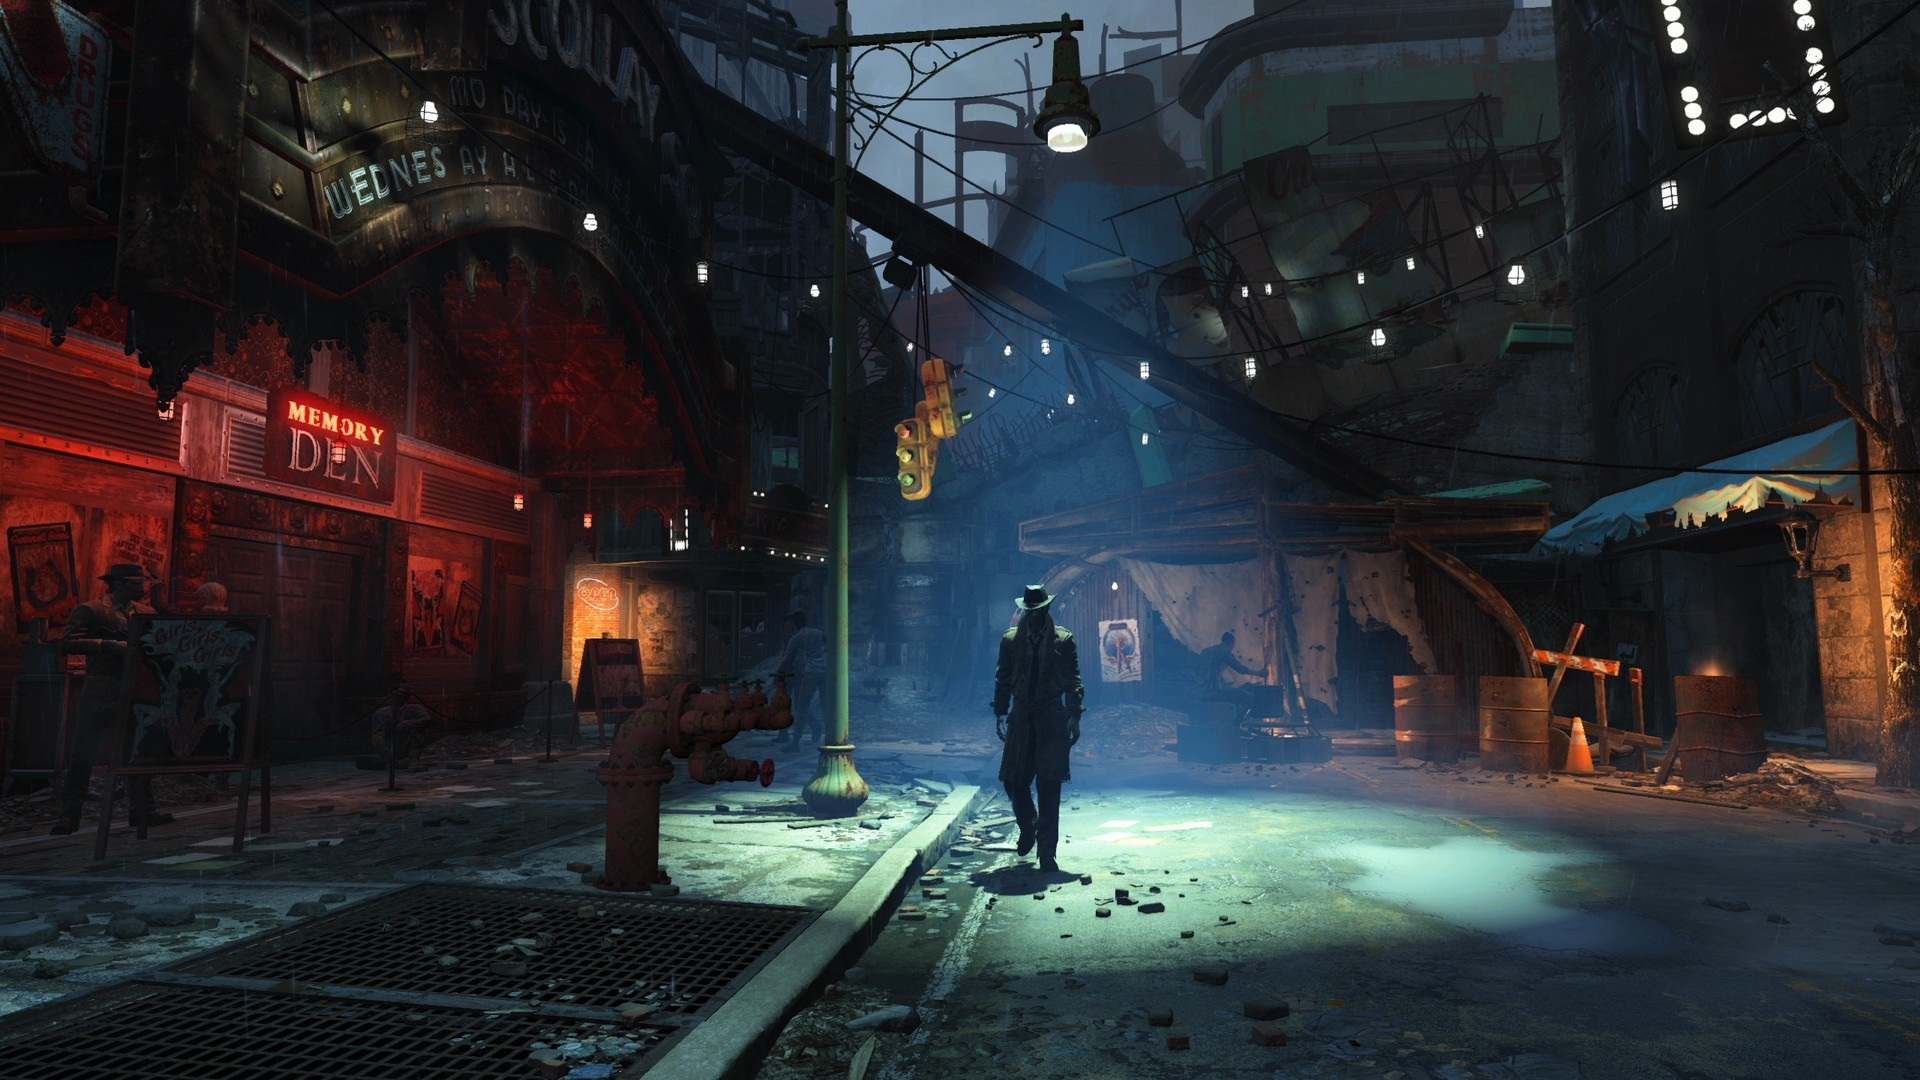 Wallpaper Fallout 4 Street City Night 1920x1080 Full Hd